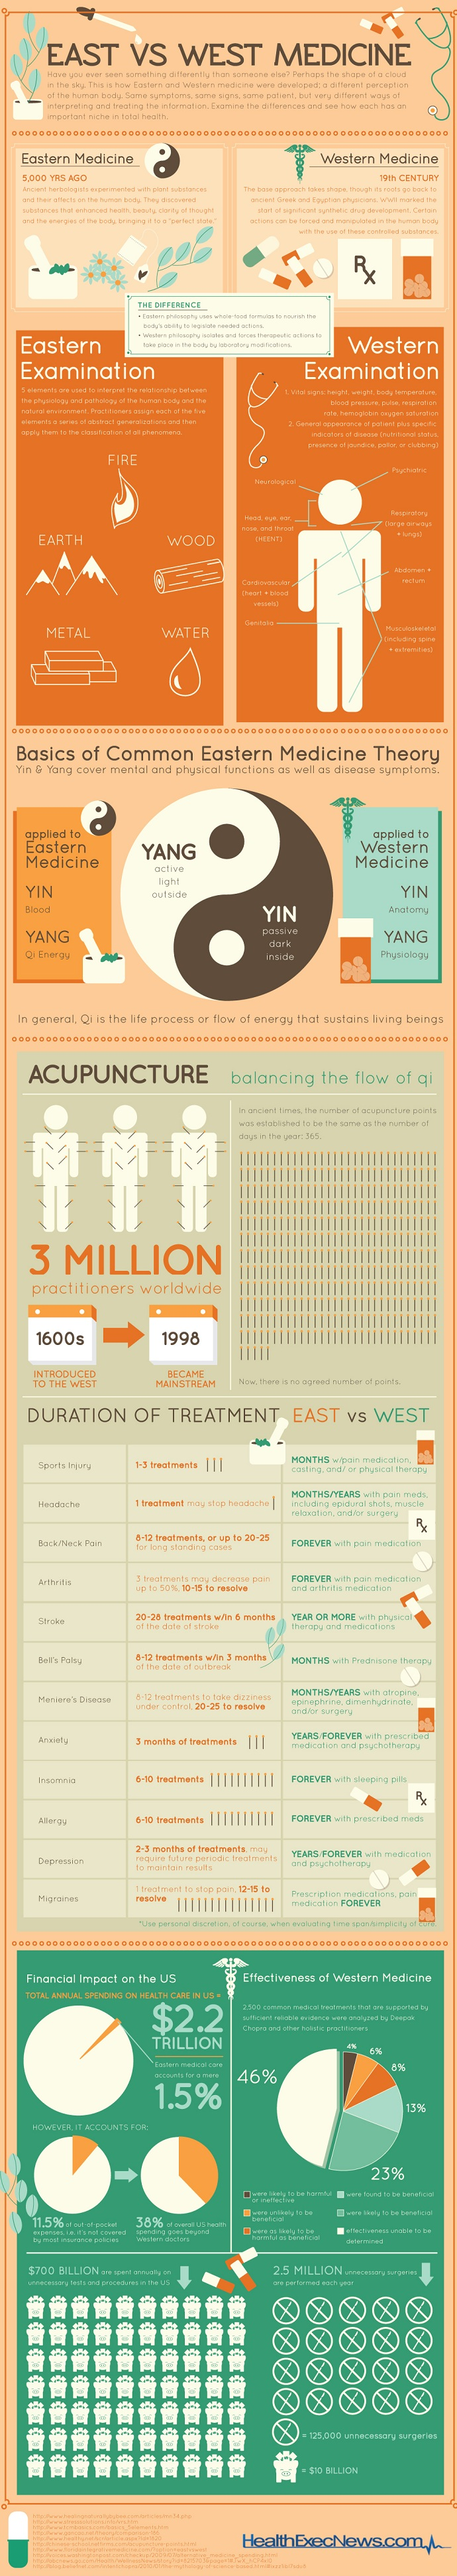 east-meets-west-medicine-infographic7